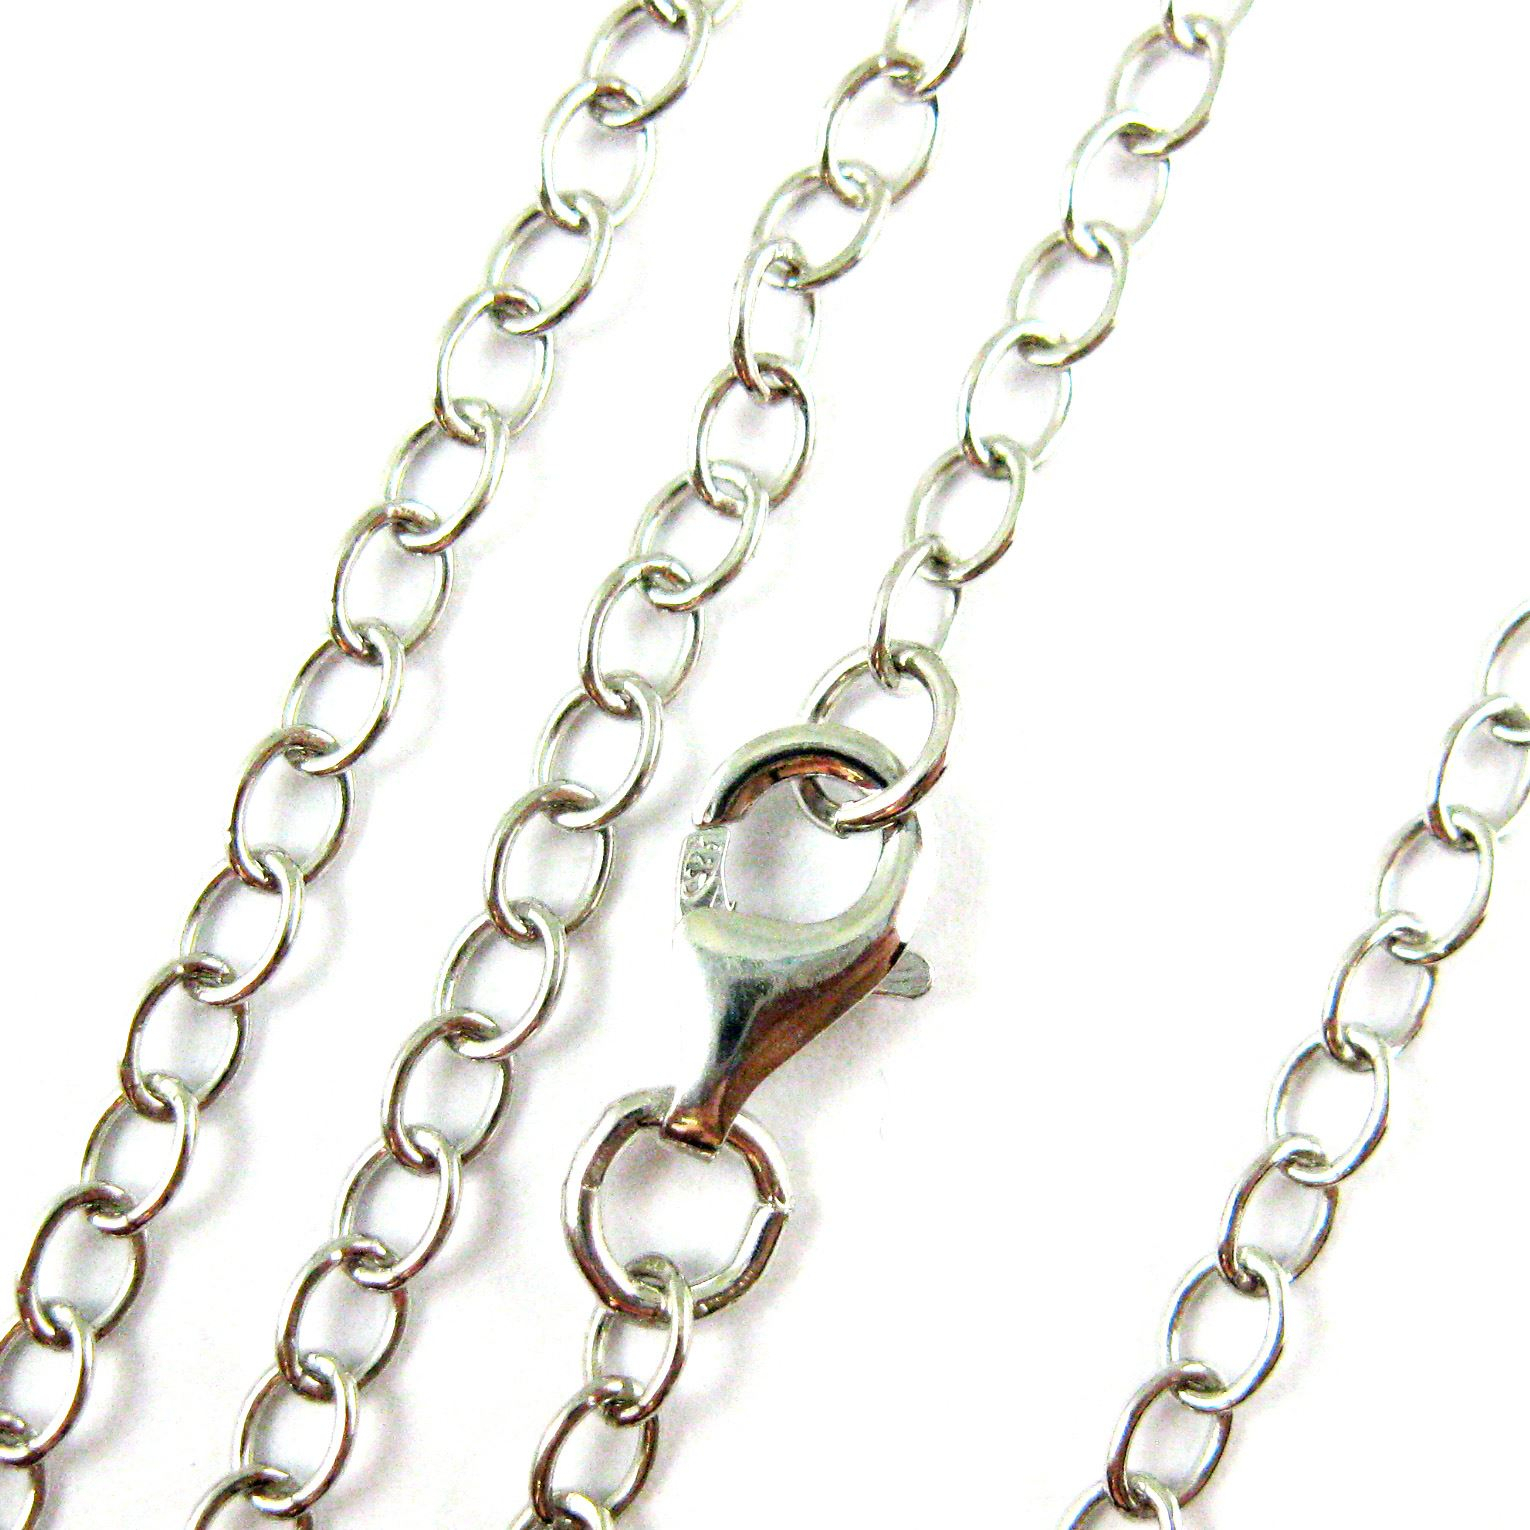 Rhodium Plated Over Of Sterling Silver Chain Necklace – Rhodium Bracelet,  Anklet – 4Mm Cable Chain Necklace – 4Mm Strong Cable Chain  All Sizes In Current Classic Cable Chain Necklaces (View 22 of 25)